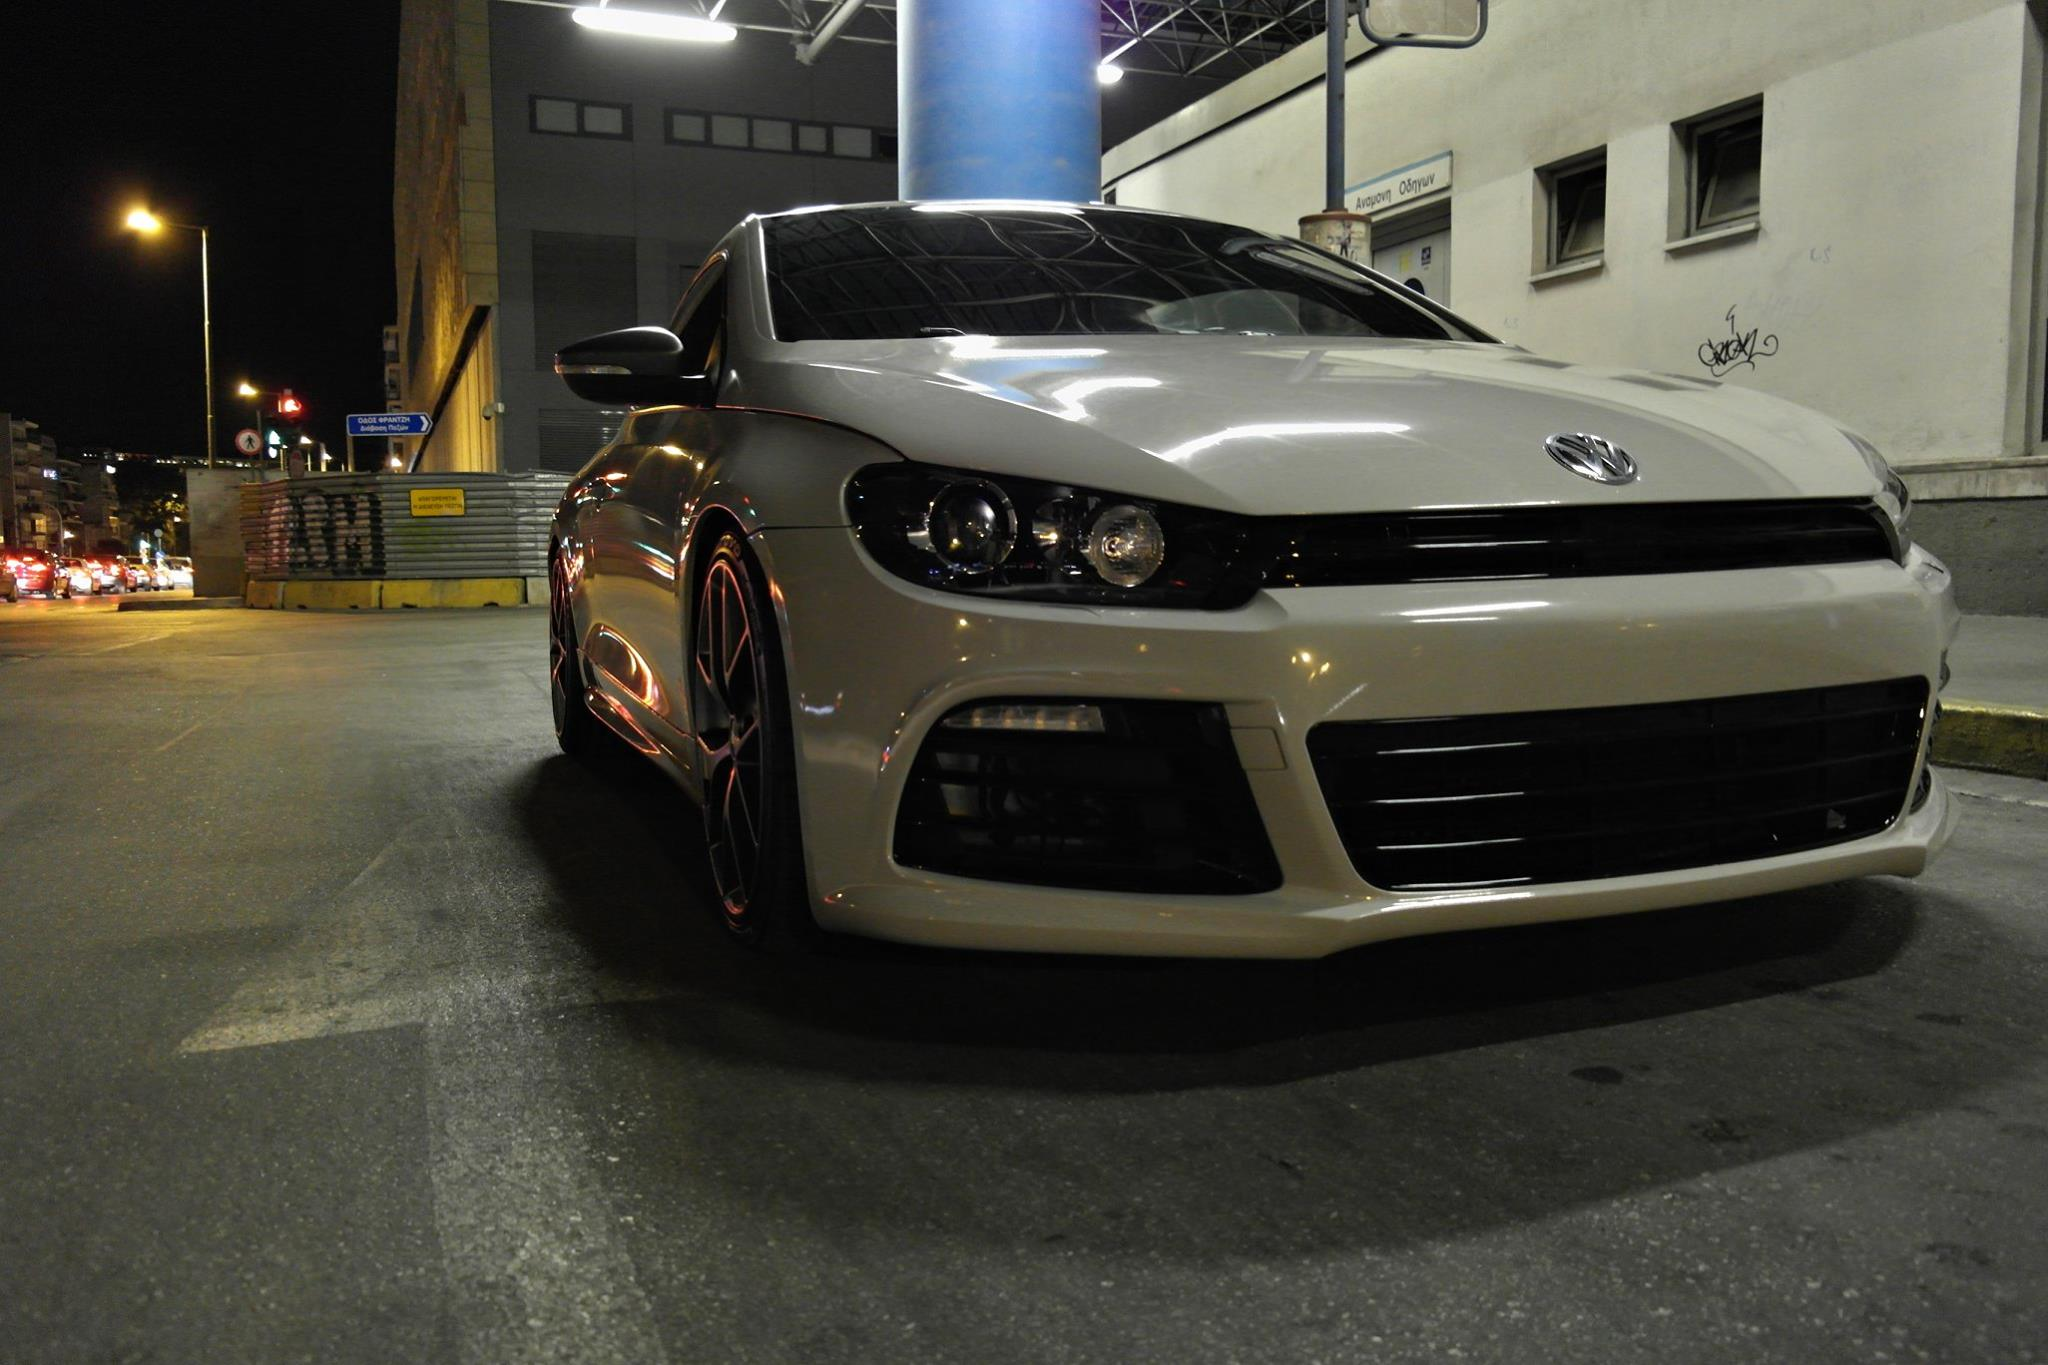 VW SCIROCCO LIGHT GREY - 3DCARBON